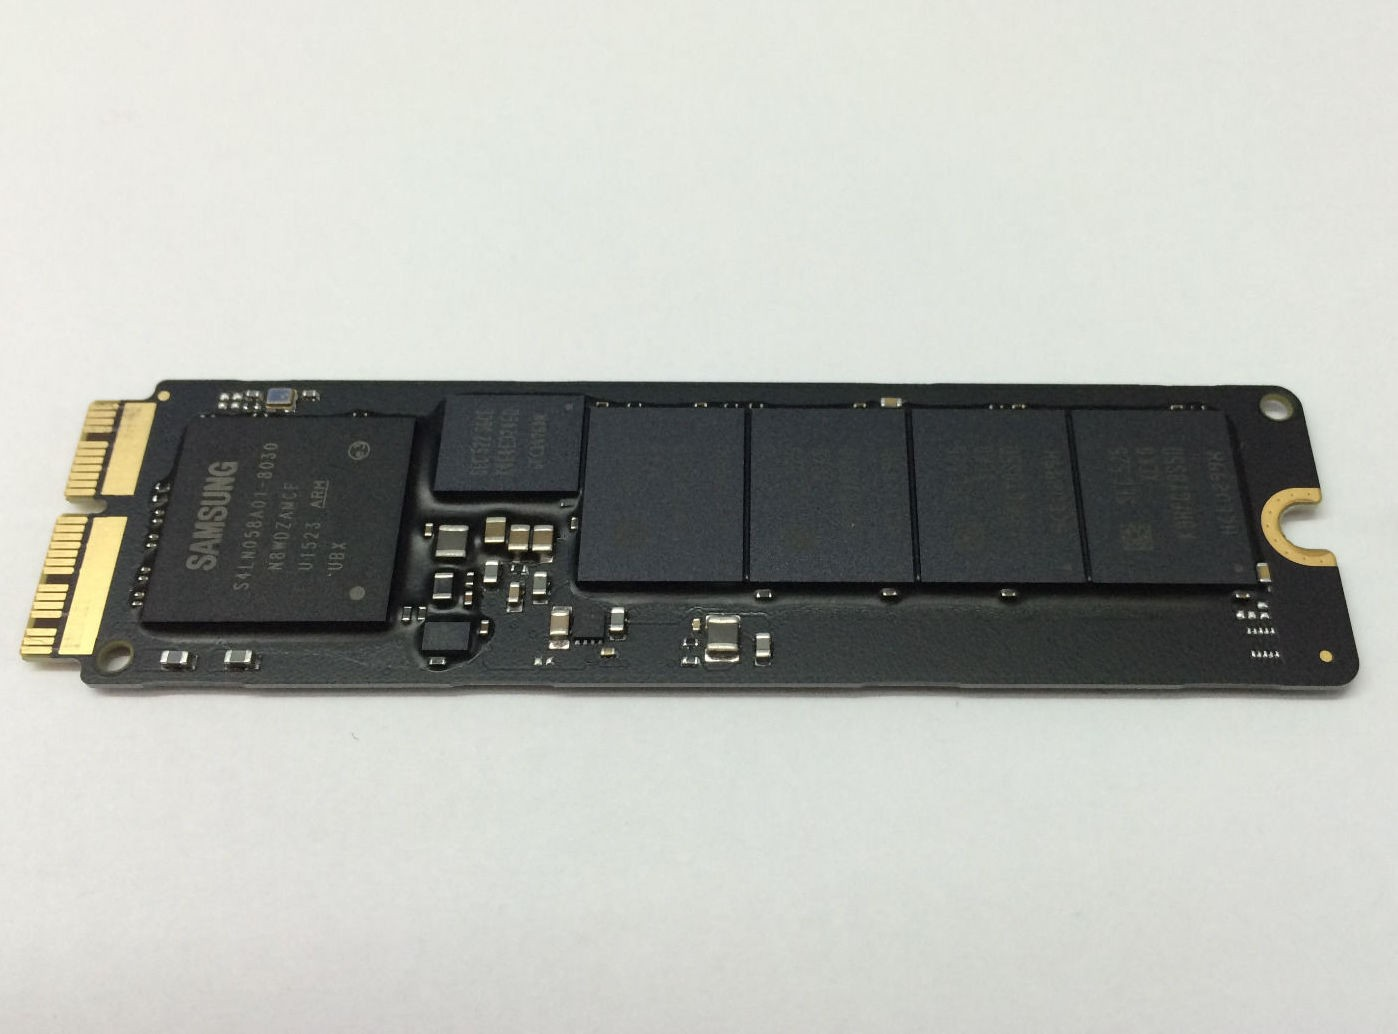 Macbook Air (13-inch Early 2015) Parts